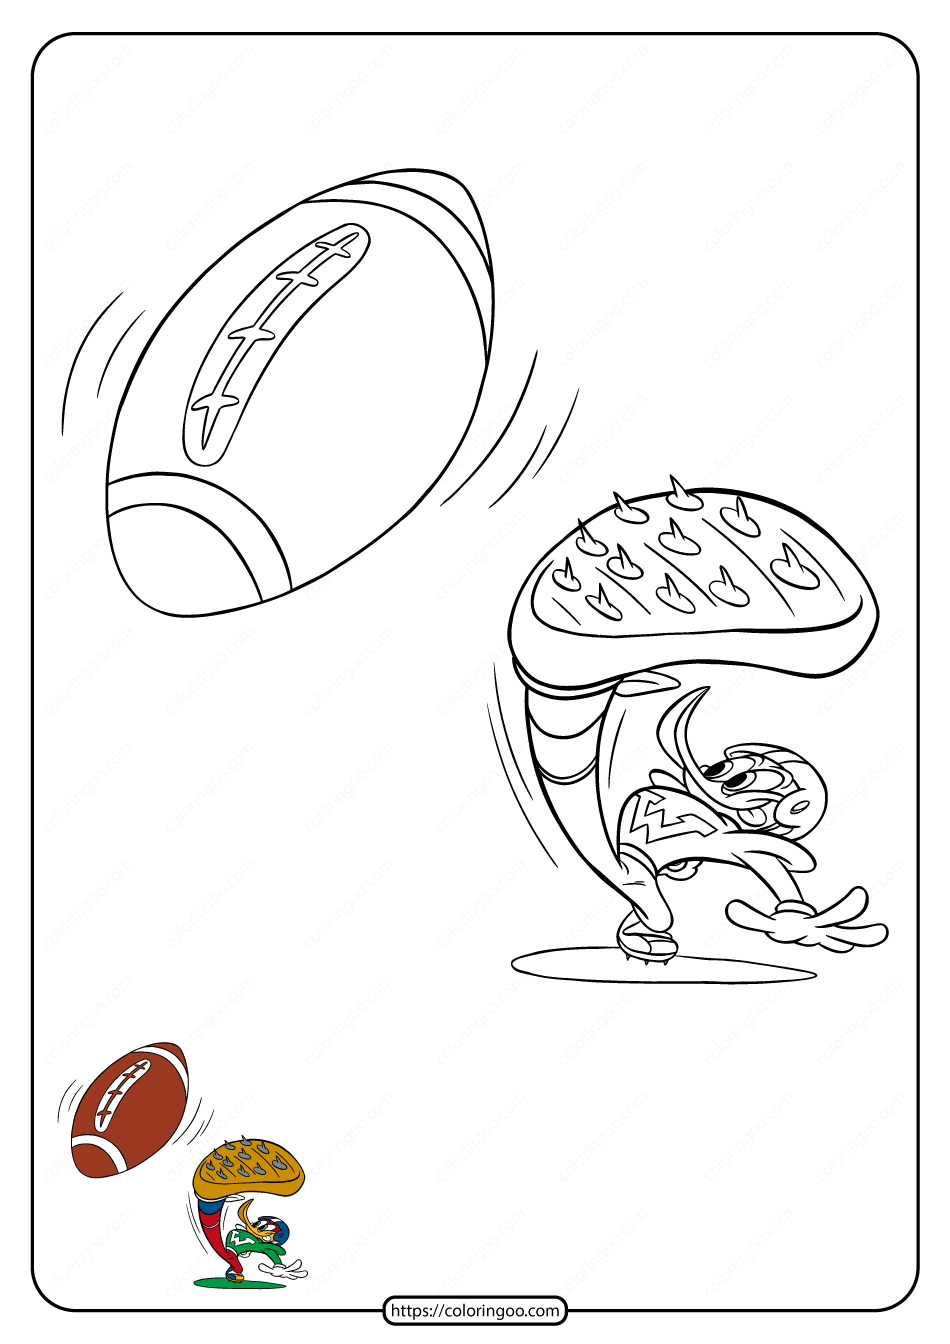 Free Printable Woody Woodpecker Coloring Pages 19